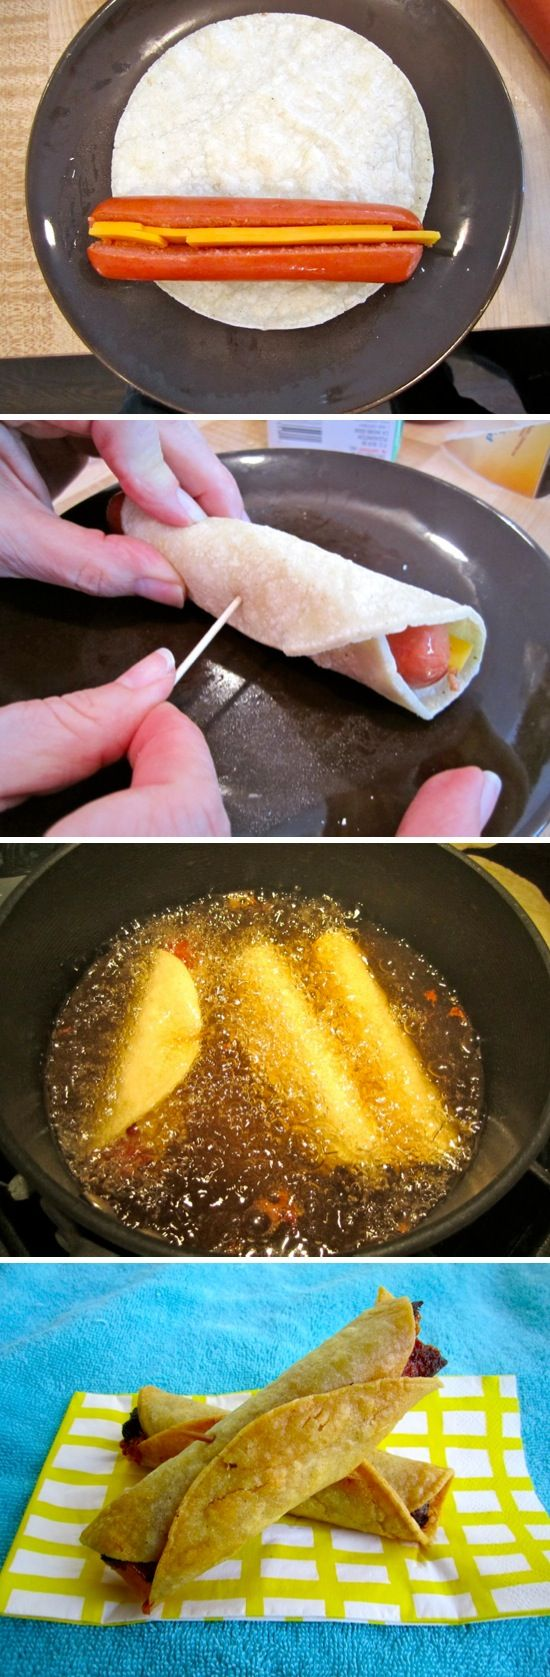 Hot Dog Taquitos - very easy to make and fun when looking for a different way to serve hot dogs - Make sure to use Hebrew National franks!   #taquito  #hot_dog